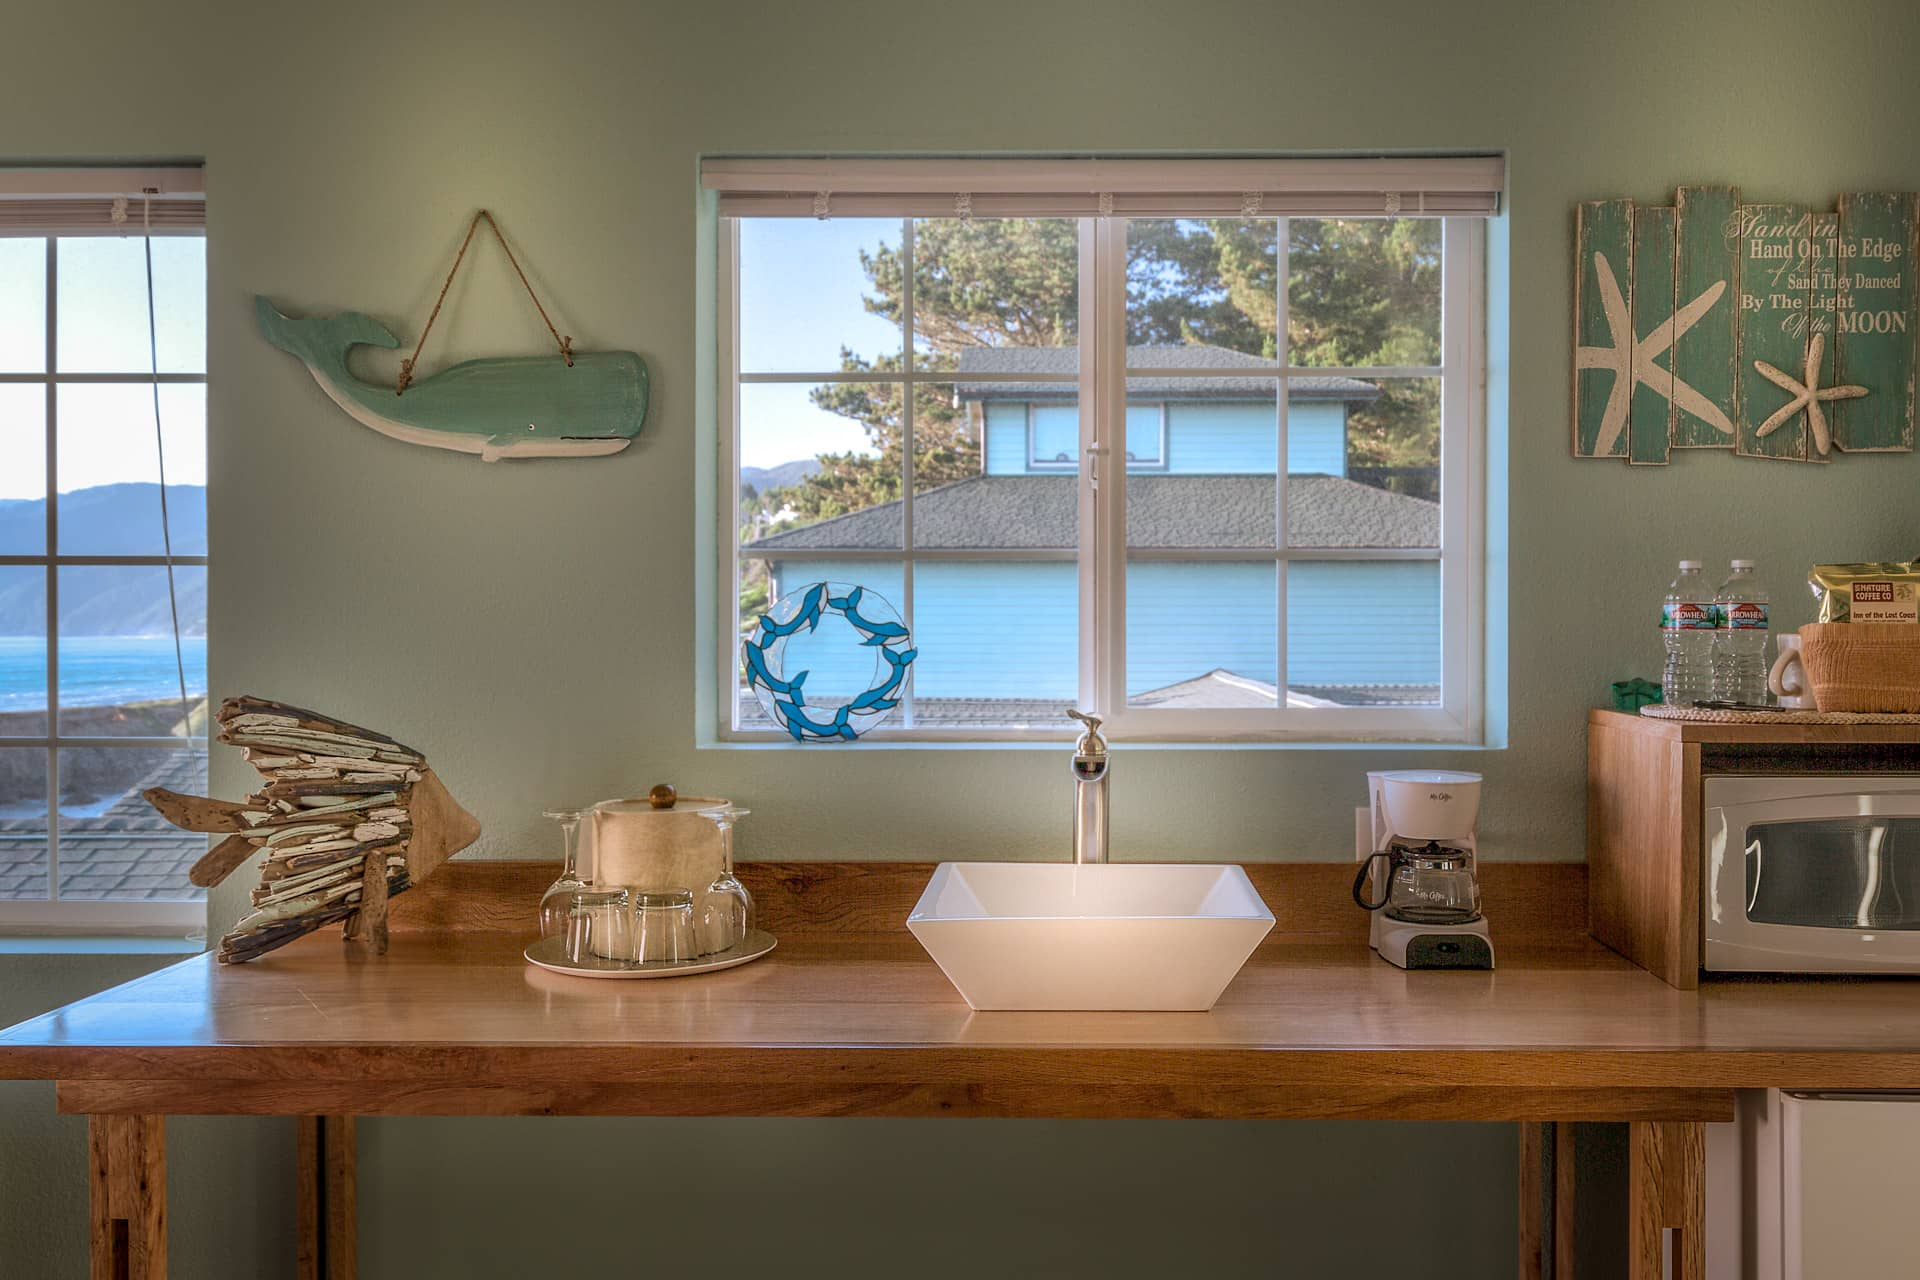 Custom wood kitchenette with sink, coffee maker, microwave, wine and water glasses, underneath window with norther view of Shelter Cove coastline, in the Deluxe Corner Guestroom at the oceanfront Inn of the Lost Coast Shelter Cove.